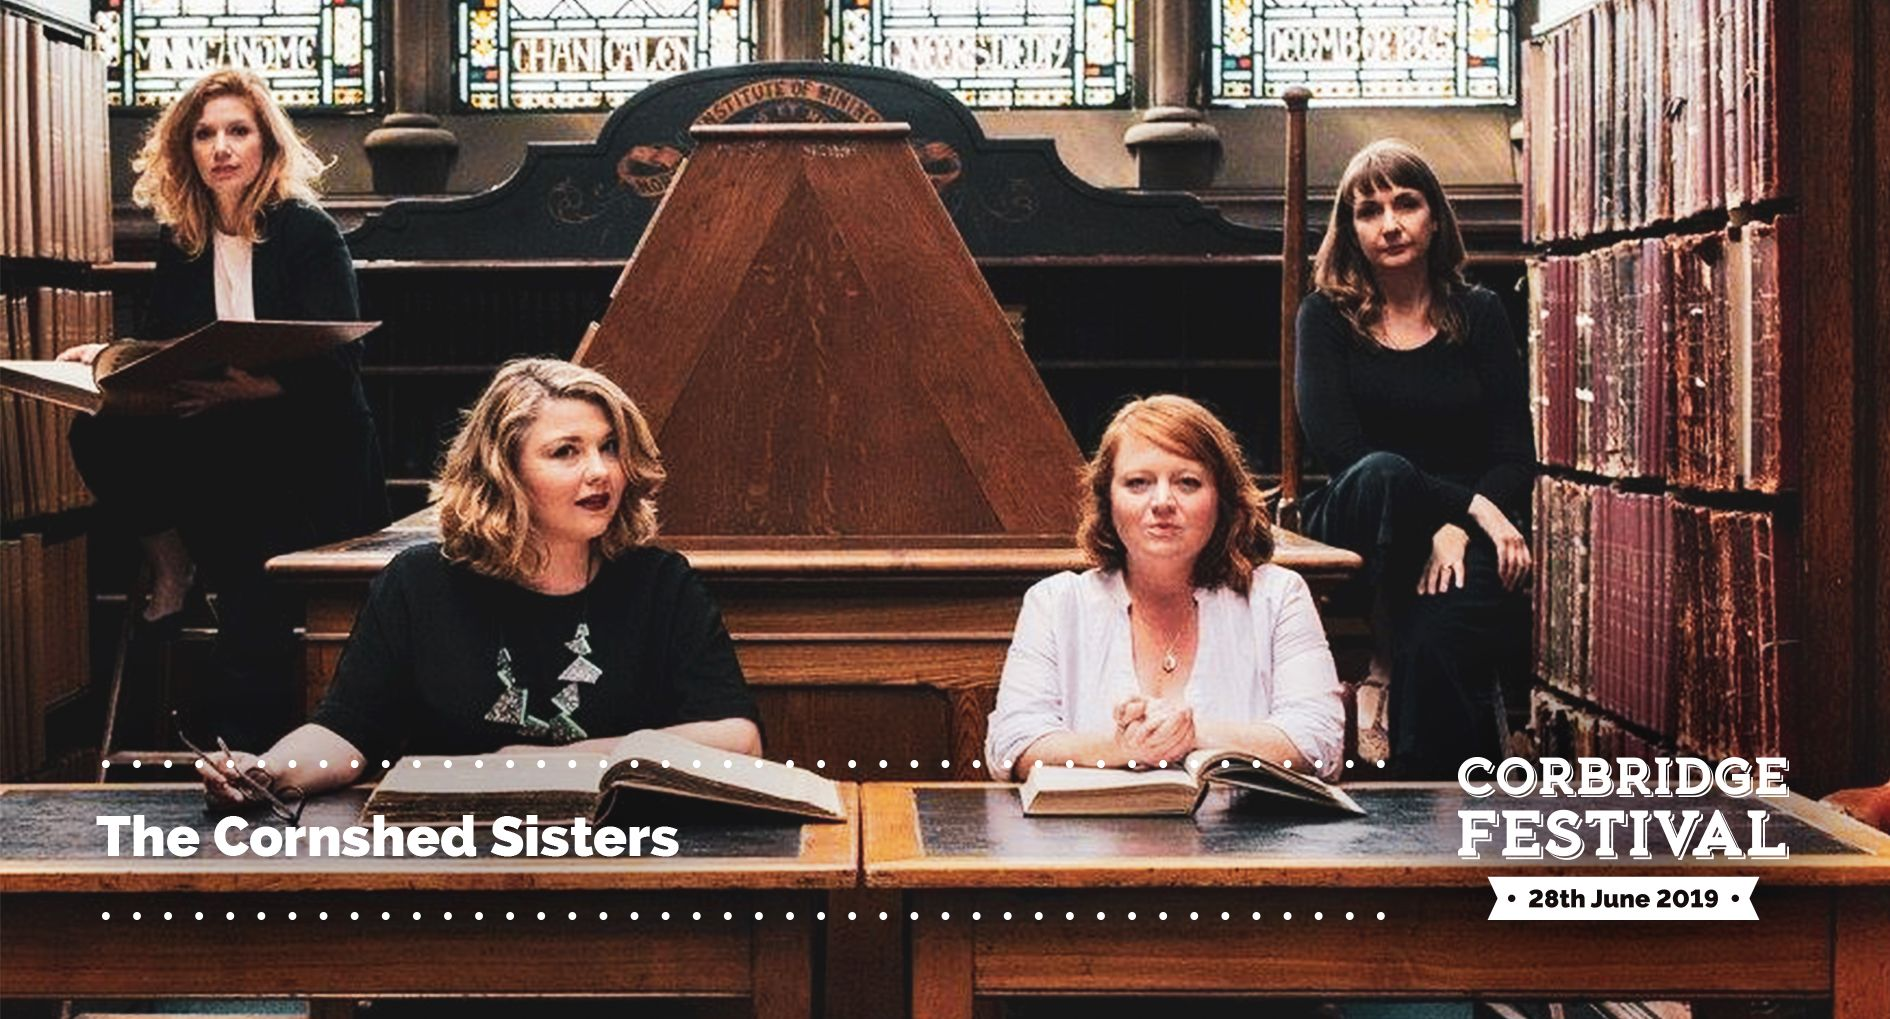 The Cornshed Sisters play Corbridge Festival 2019 on Friday 28th June